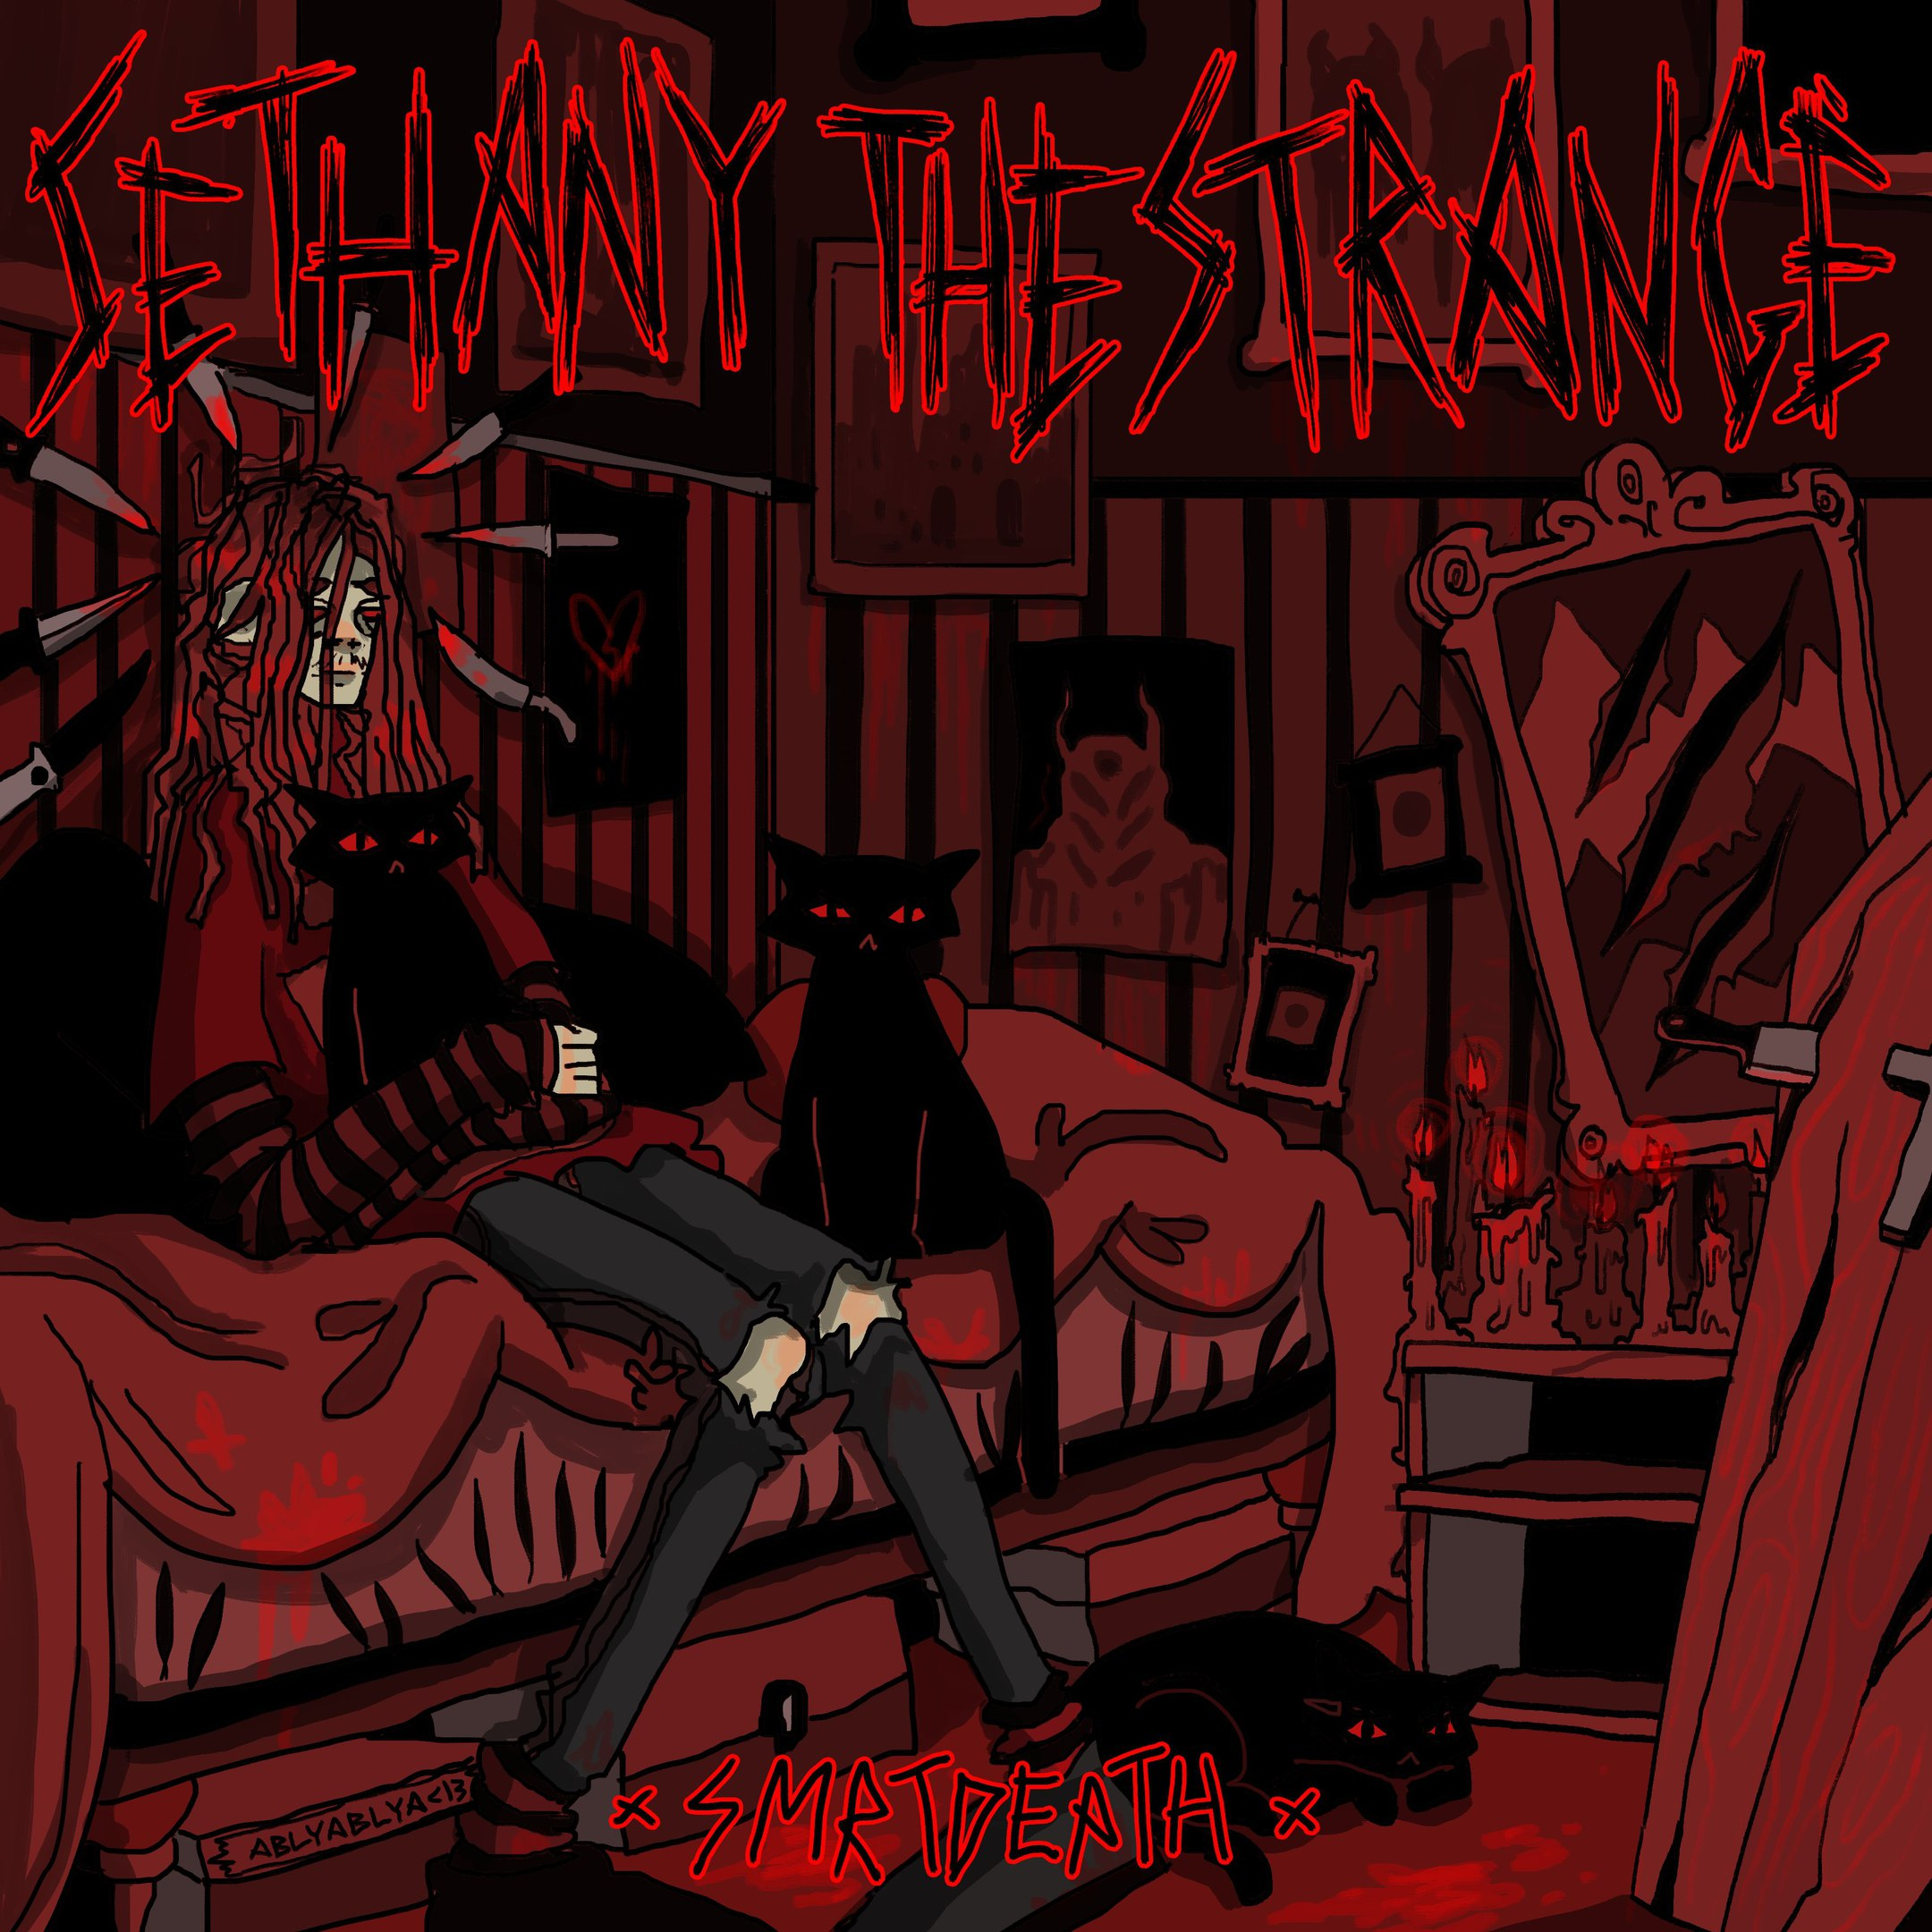 smrtdeath - sethany the strange